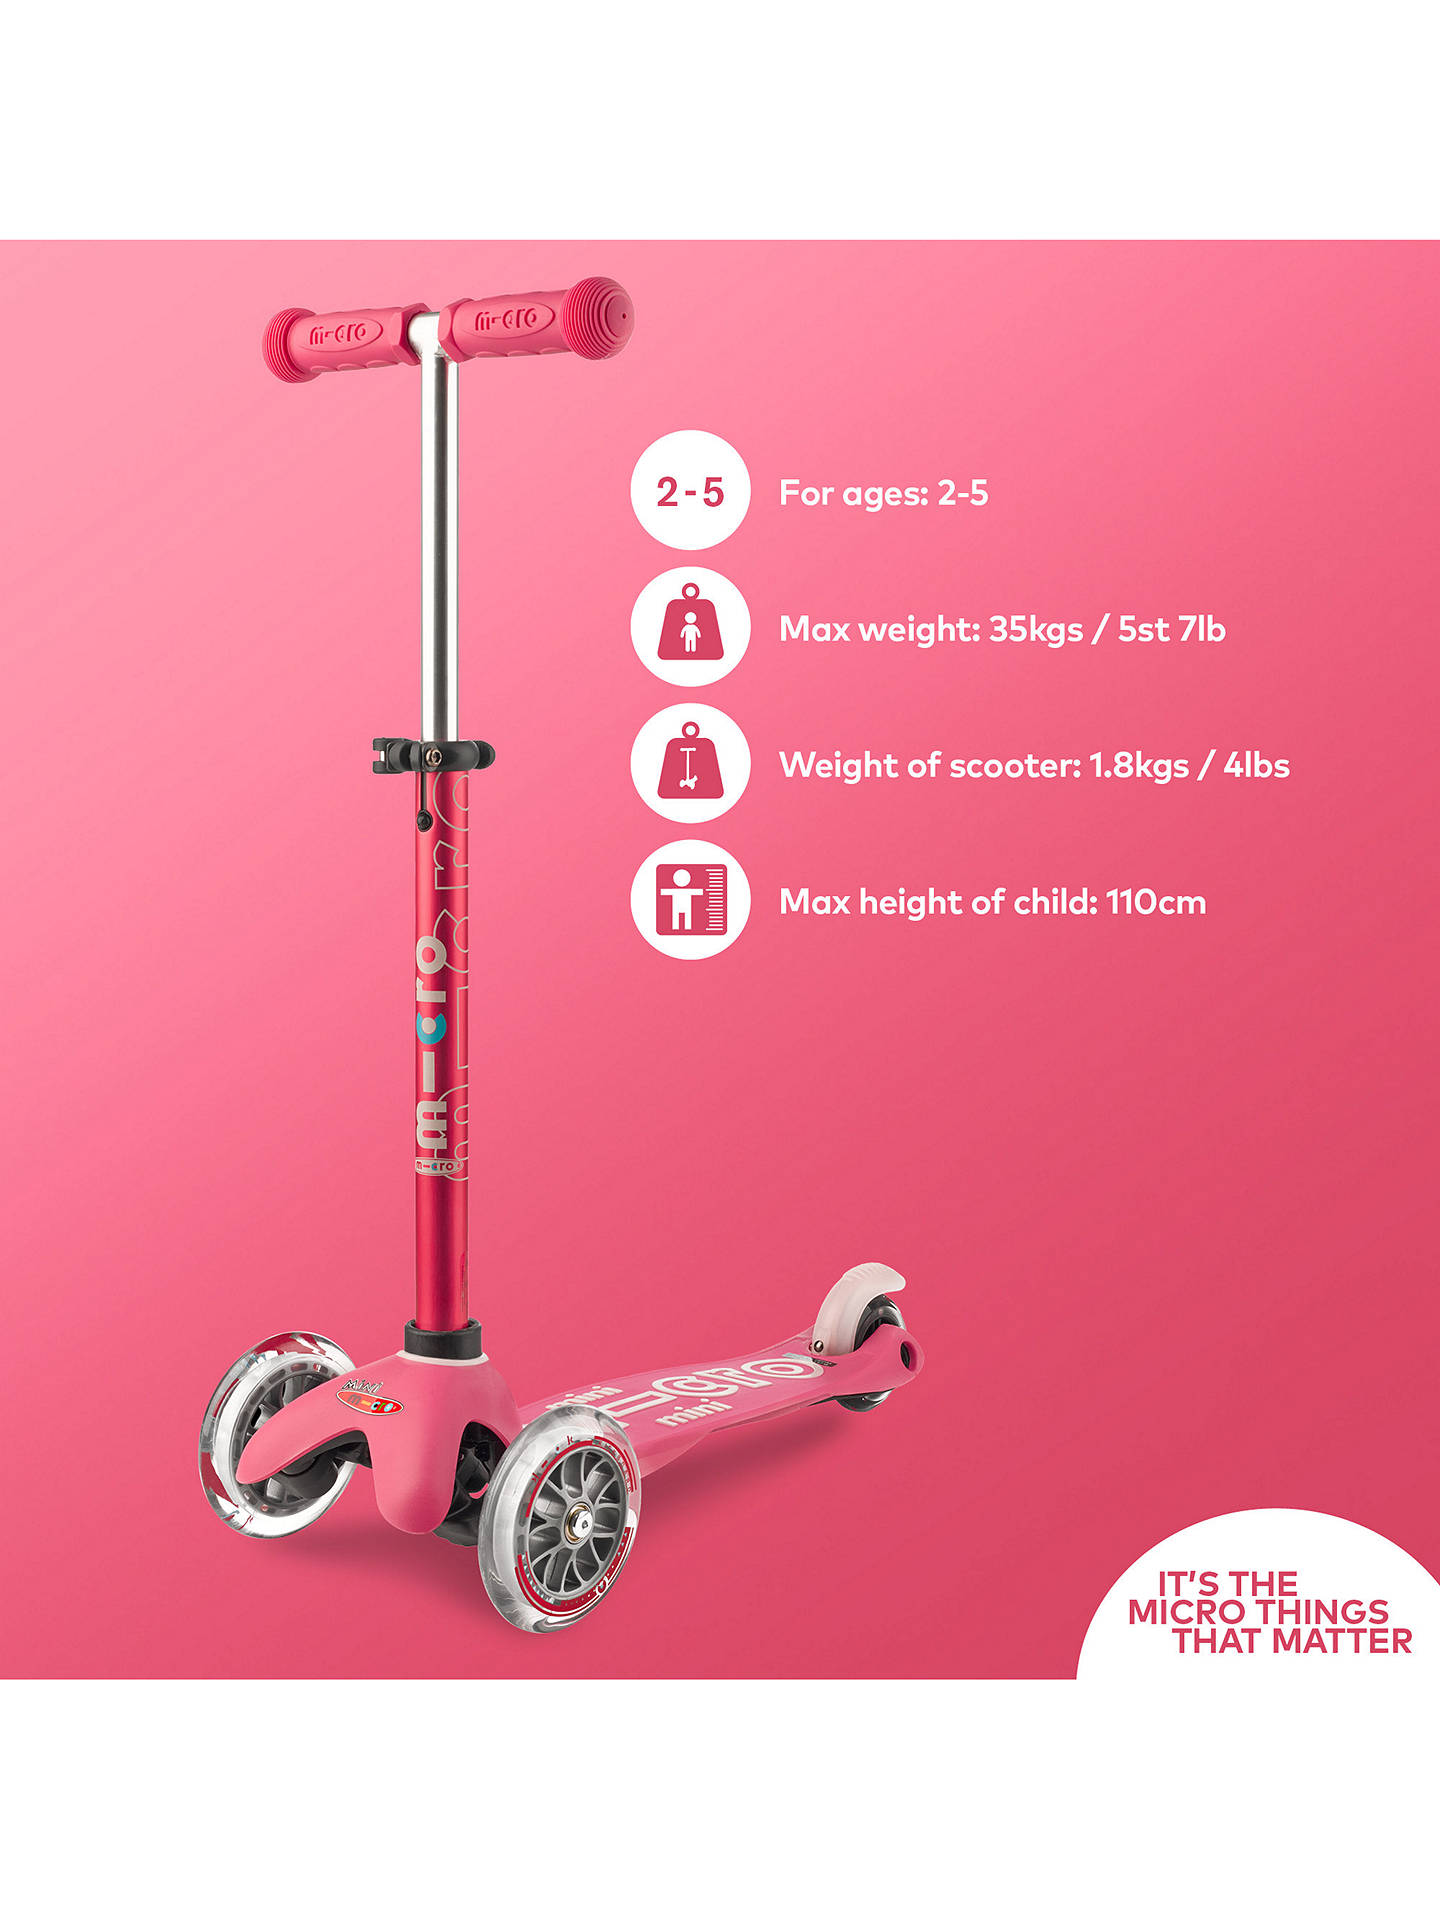 Buy Mini Micro Deluxe Scooter, 2-5 years, Pink Online at johnlewis.com